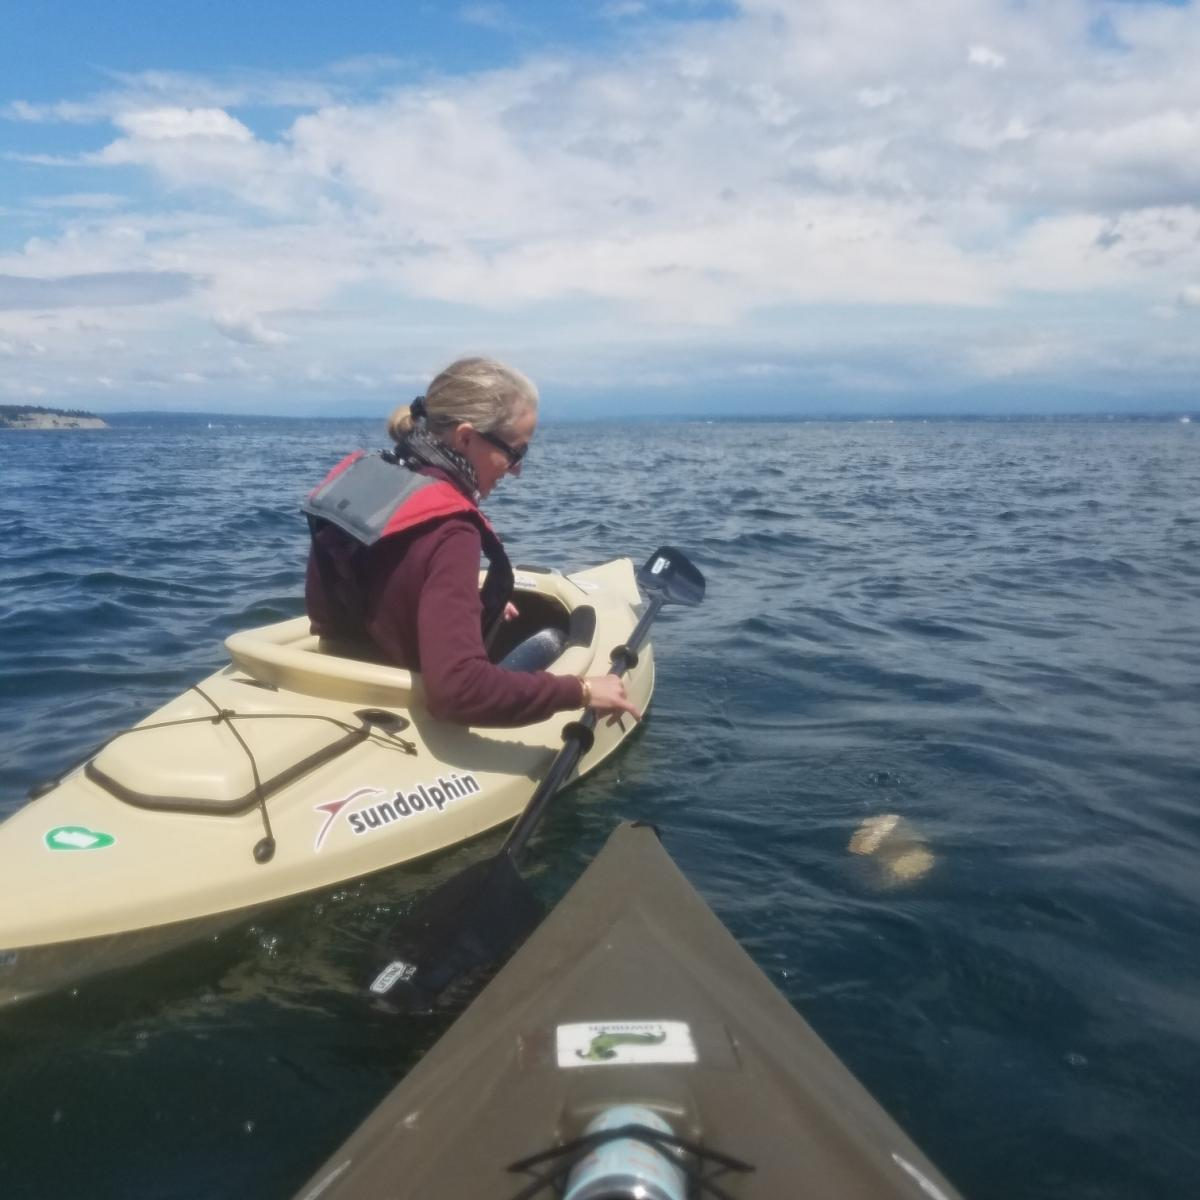 Just before the anniversary of van Spronsen's death, Ariel and her dad's second wife, Susan Harrell, kayaked onto Puget Sound. They brought along Van Spronsen's ashes and released them into the water.